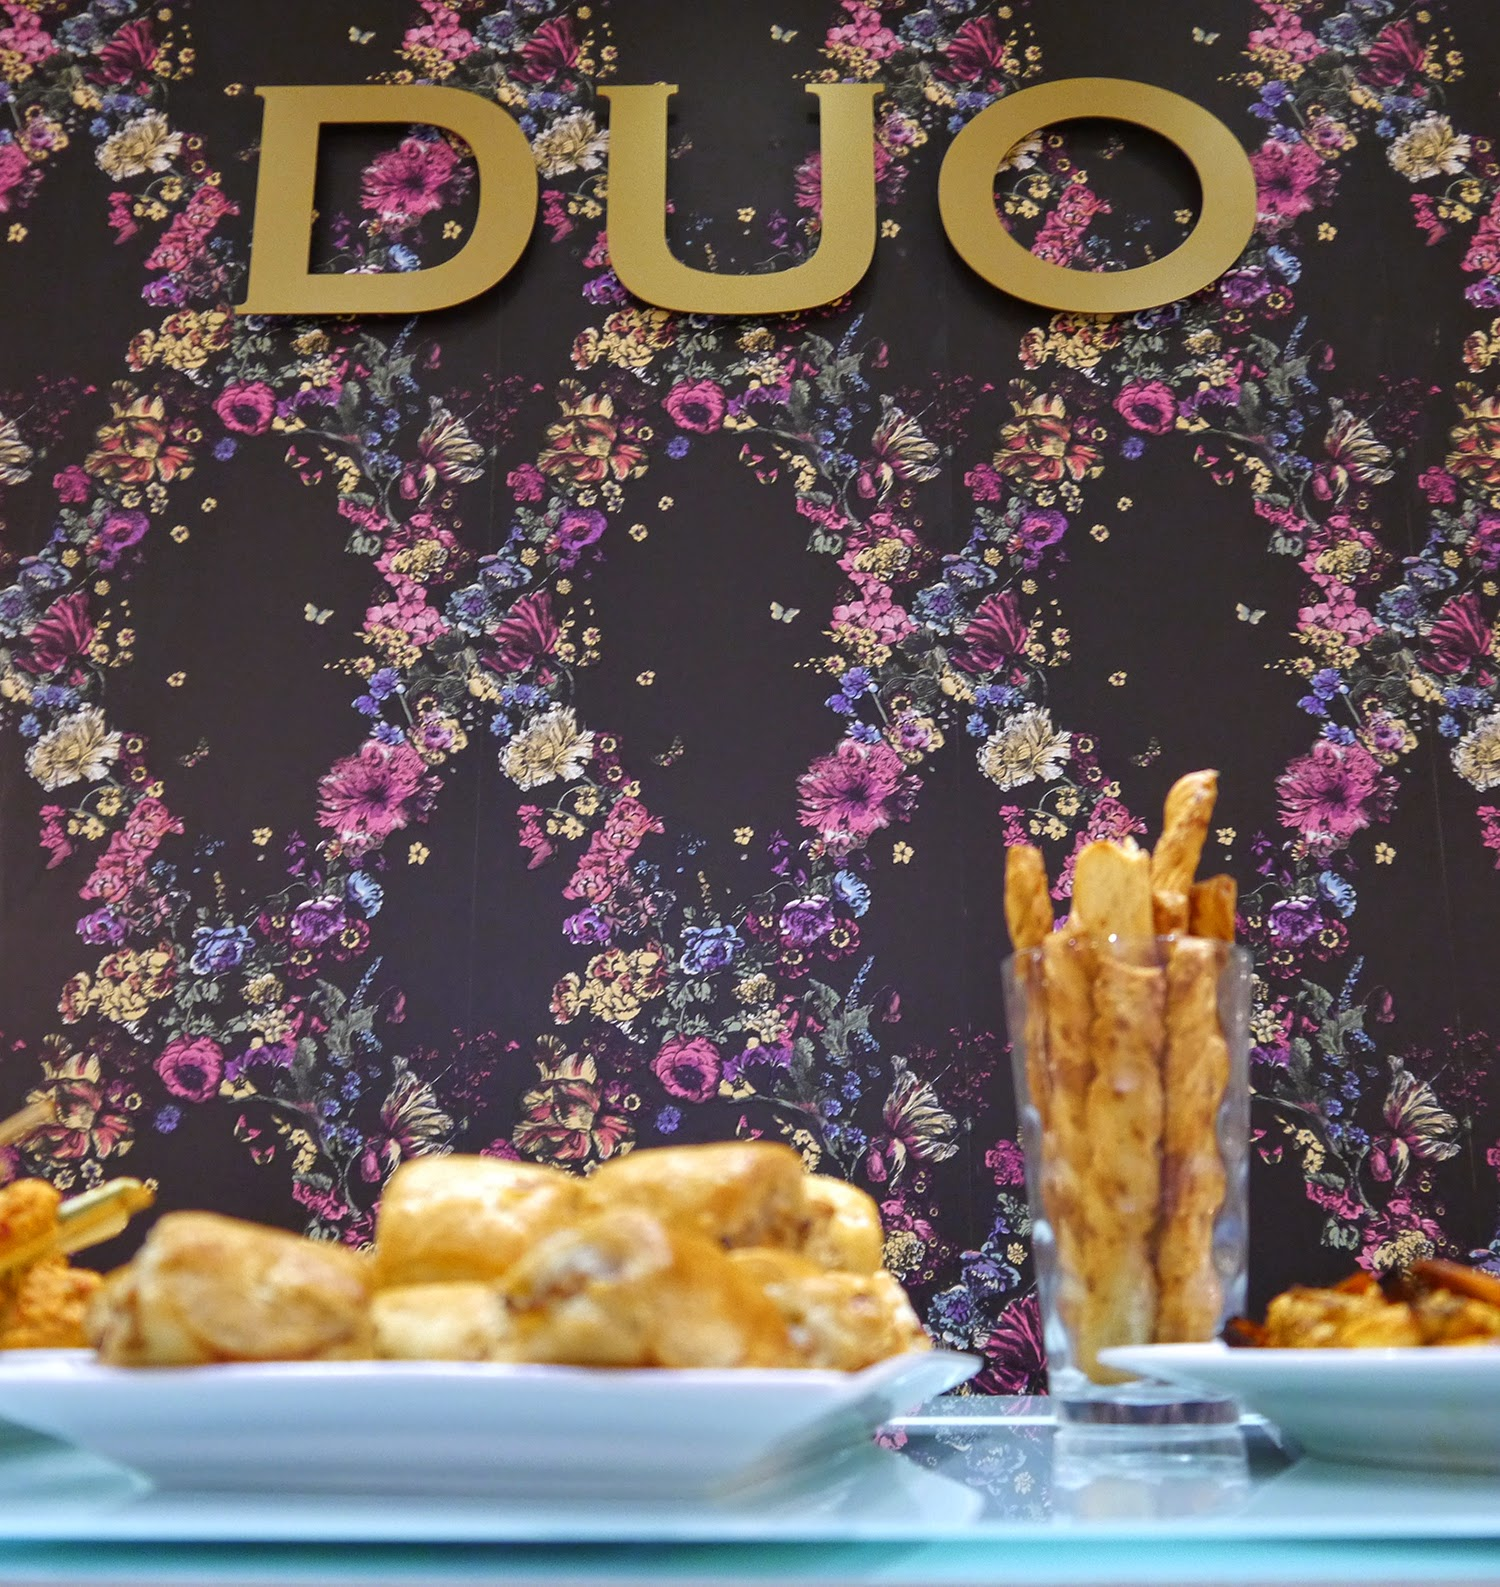 DUO, Edinburgh event, Blogger event, Scottish bloggers, blogging duo, autumn style, footwear, shop, snacks, boots, Wardrobe Conversations, #boottribe, #DUOBootTribe, Duo Boot Tribe, purple wallpaper, patterned wallpaper